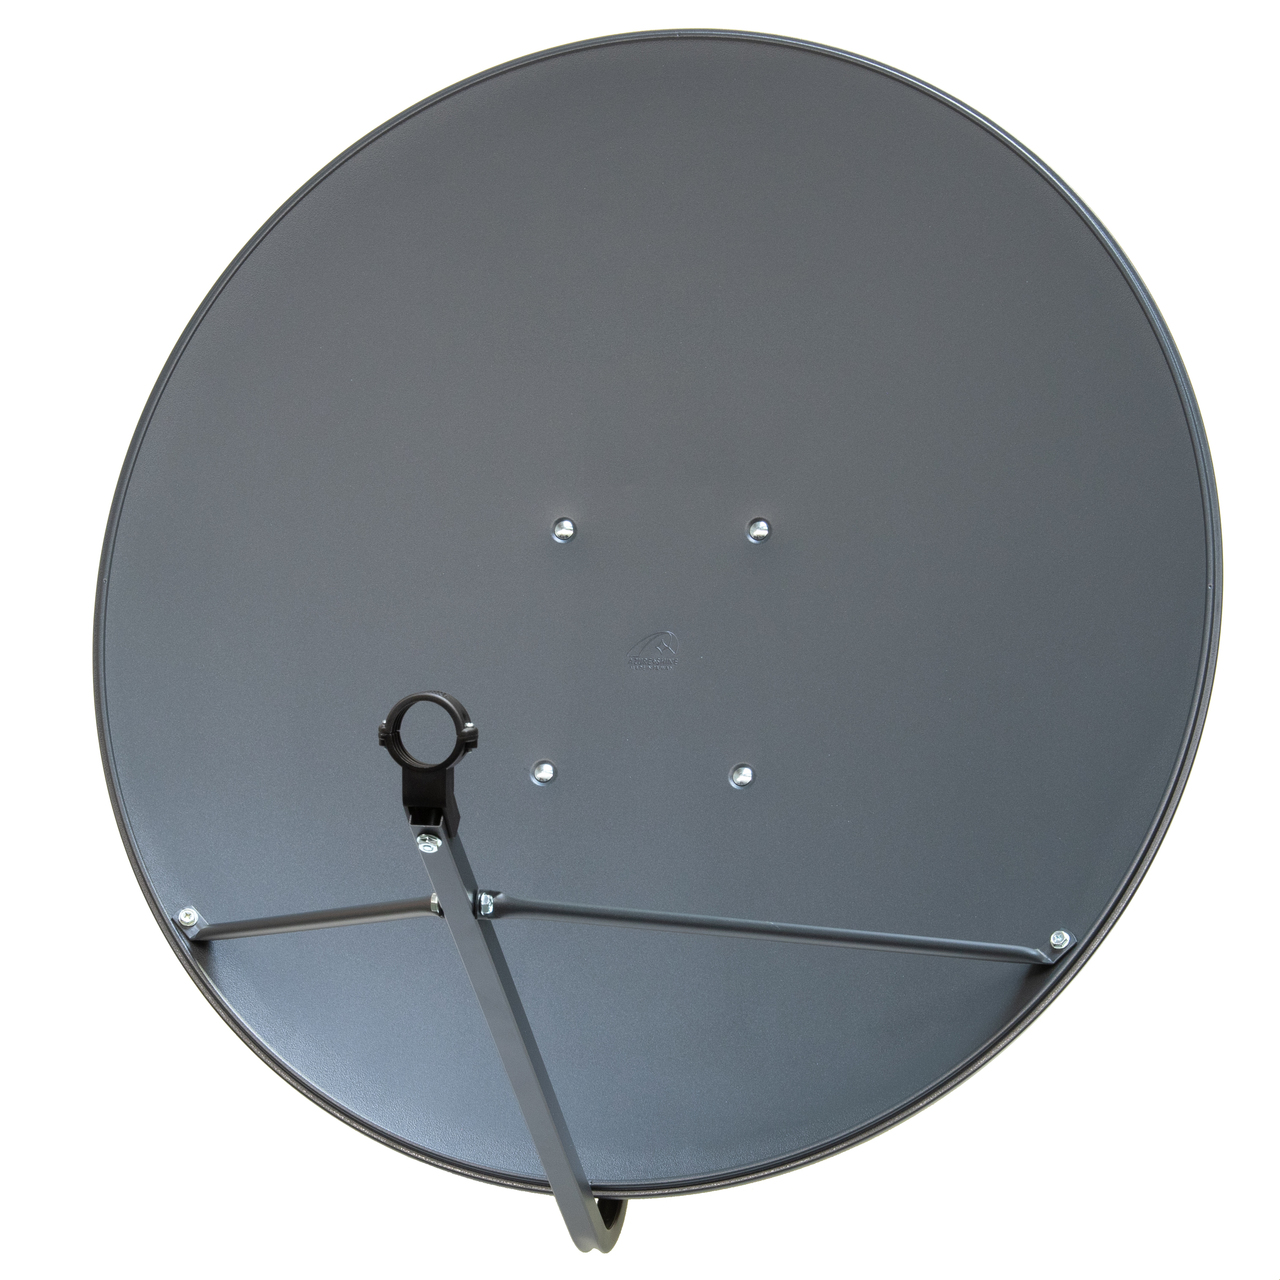 Details about 36 Inch 90 cm Free To Air FTA Satellite Dish & HD LNBF